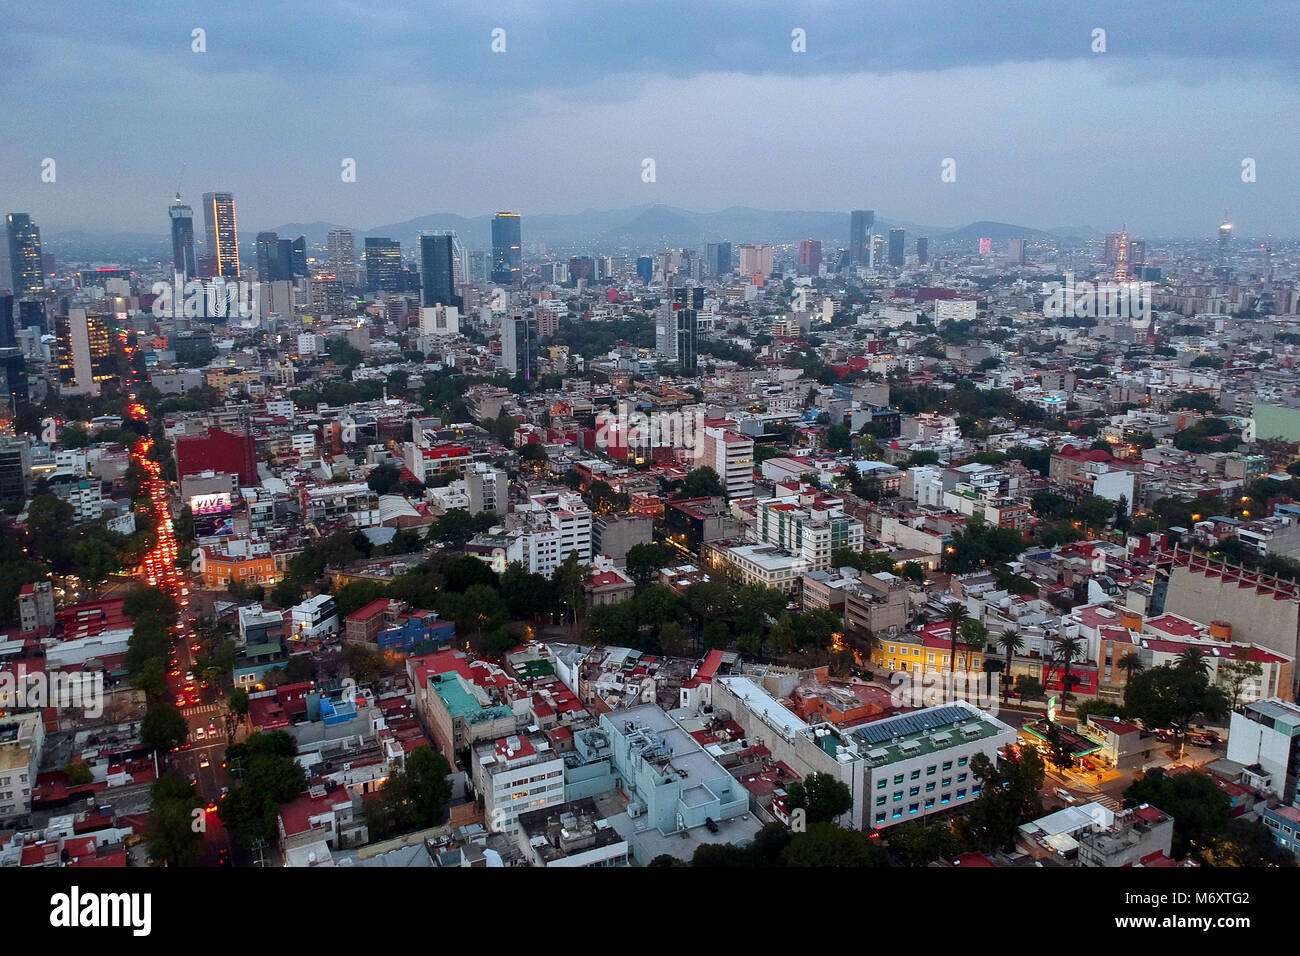 Aerial View Taken With A Drone On The Buildings Houses Condominiums Streets Boulevards And Colonies Of Mexico City Largest In World